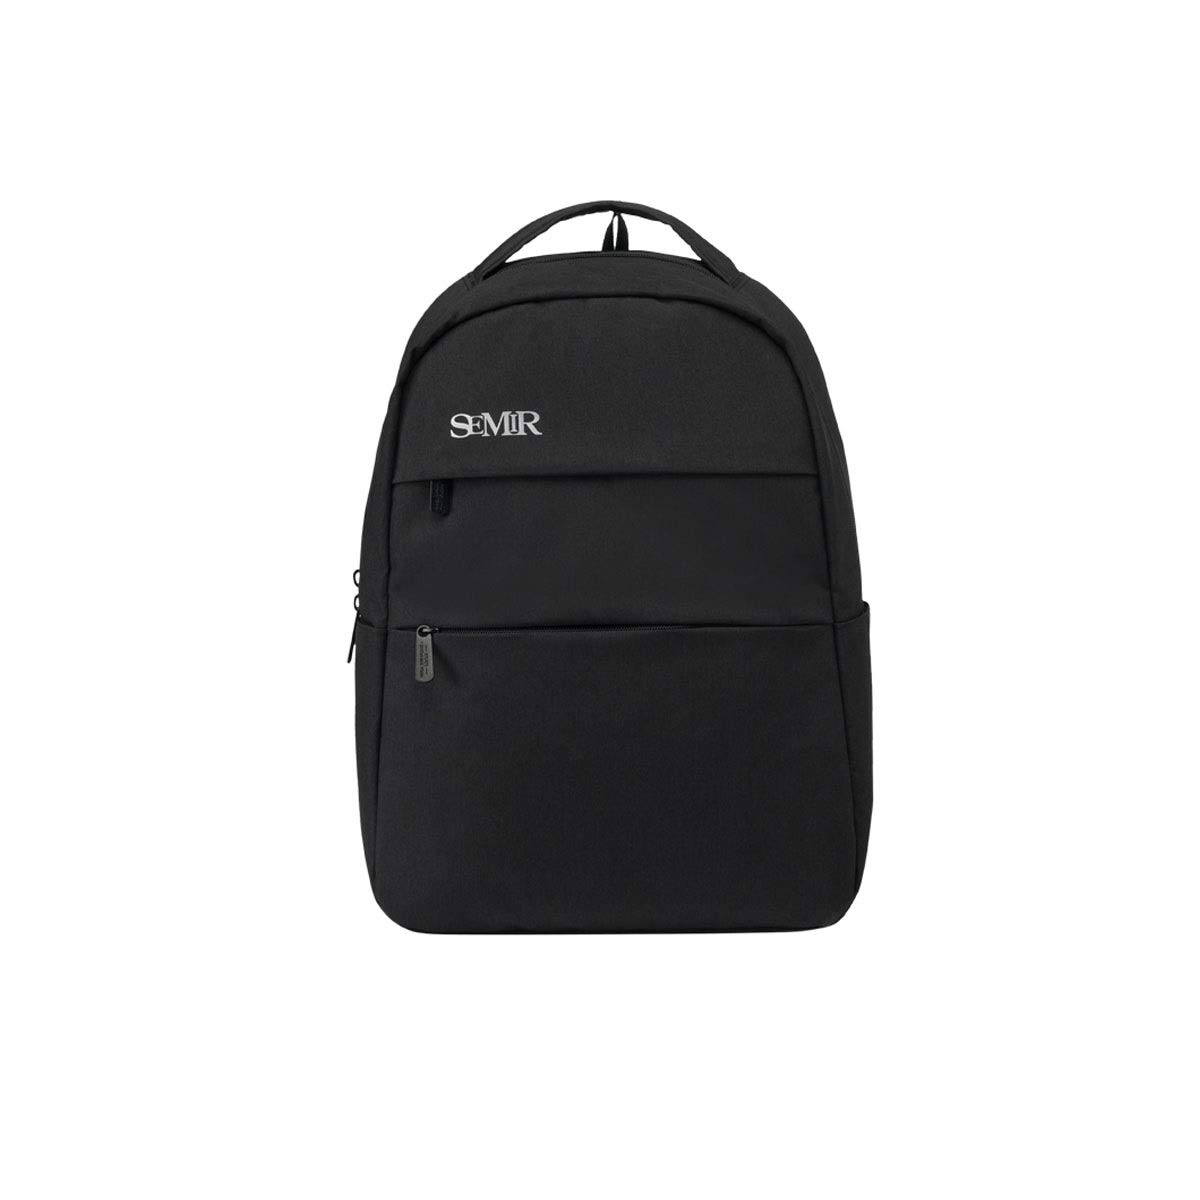 TONGBOSHI Backpack Men, Backpack Stitching Contrast Color Simple Casual College Students Large-Capacity Bag Travel Bag Computer Bag (Color : 3)